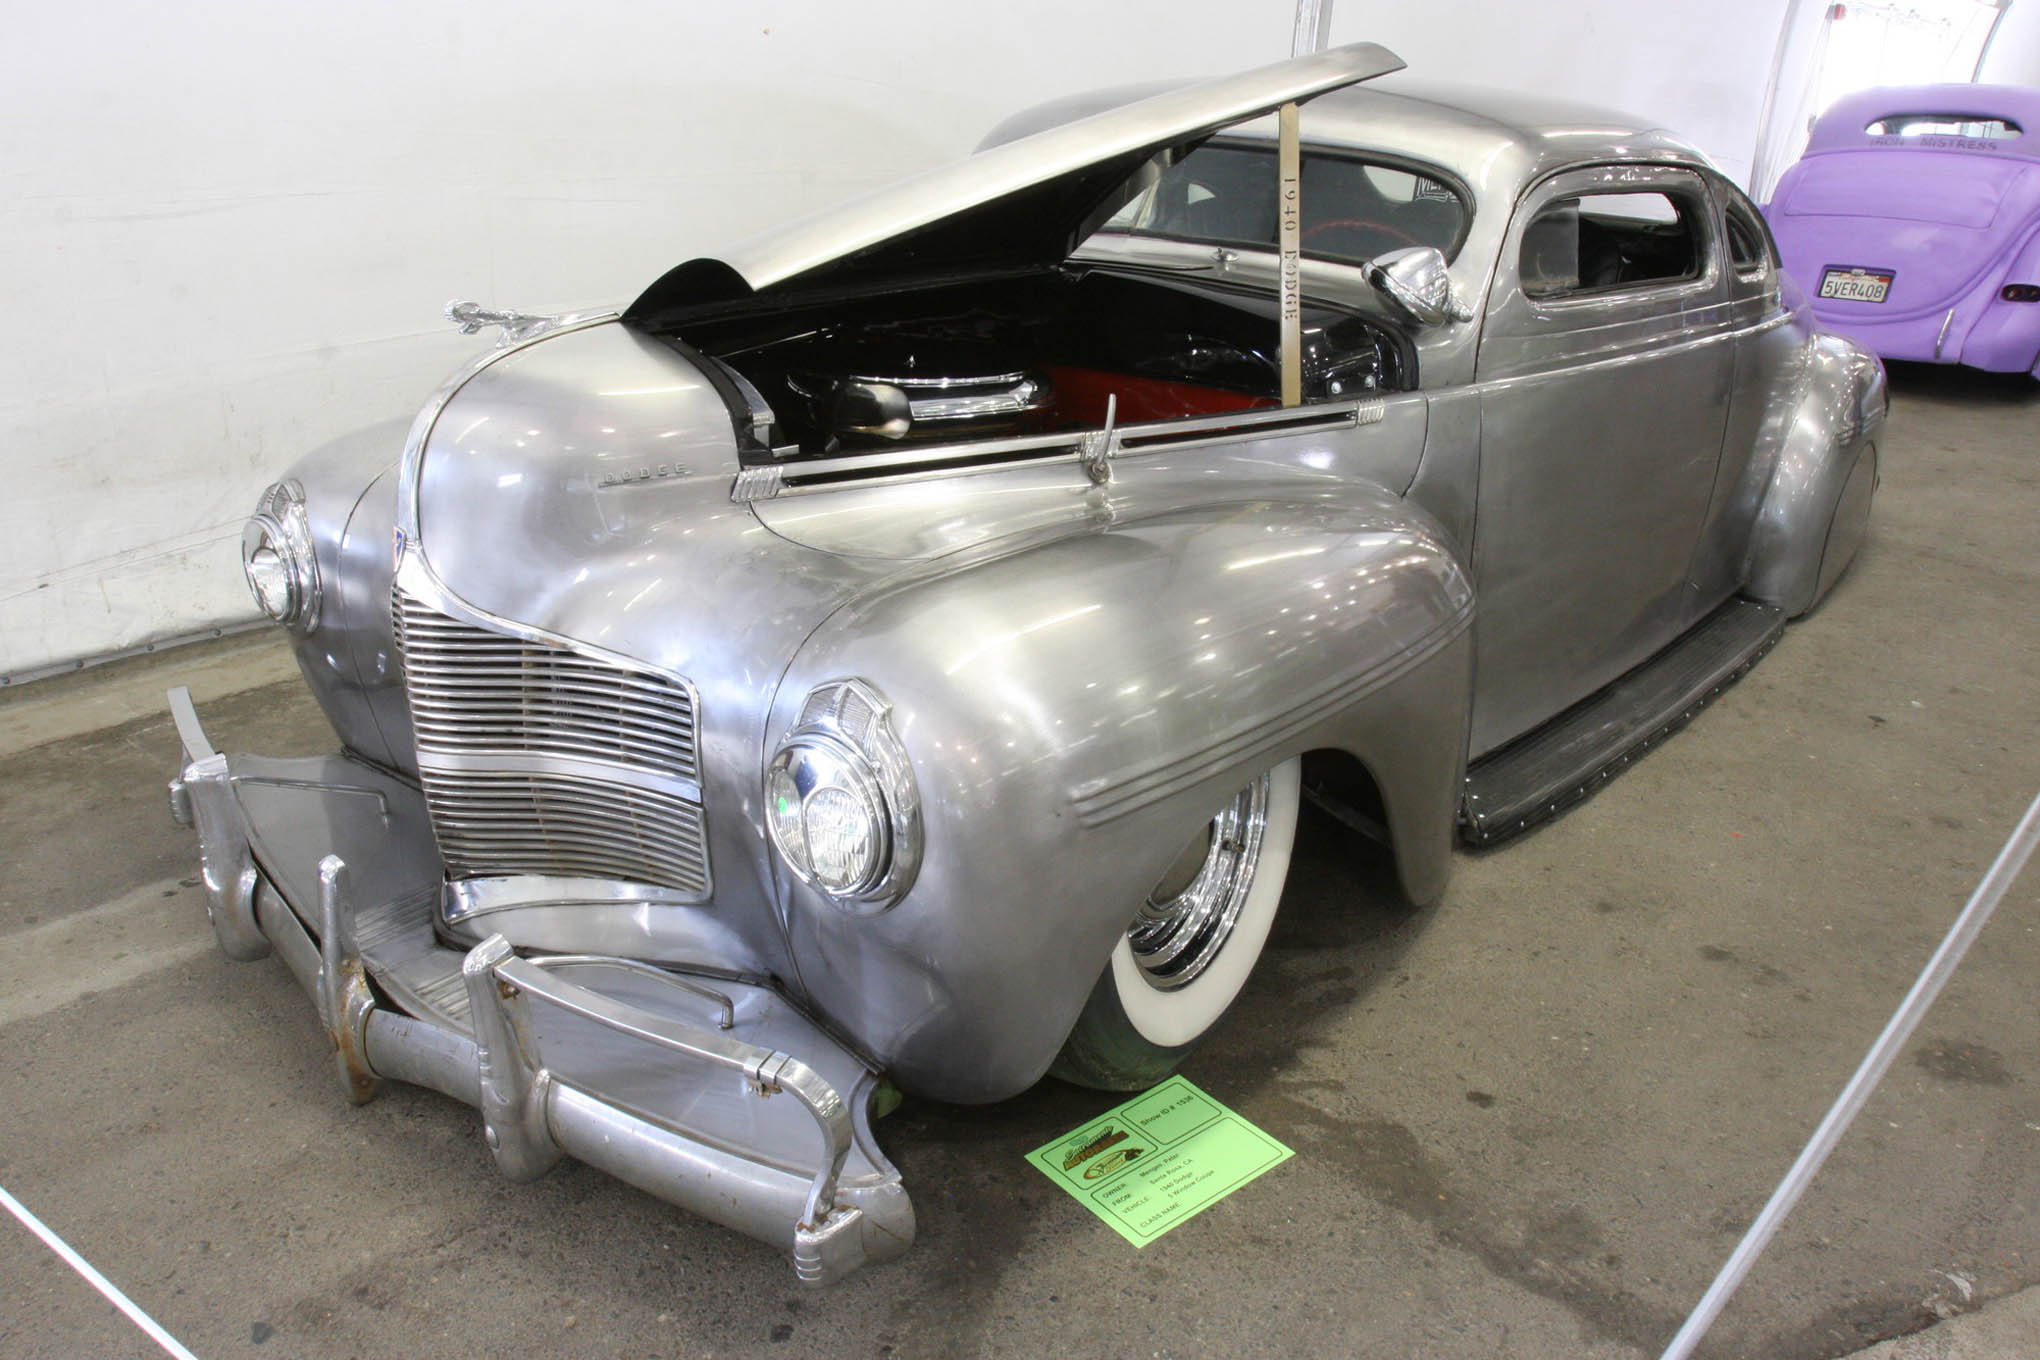 Since we saw it at the March Meet in 2015, this 1940 Dodge has seen some progress. Peter Menges of Menges Twins Speed Shop and Customs brought the chopped, Hemi-powered Dodge to Sacramento.